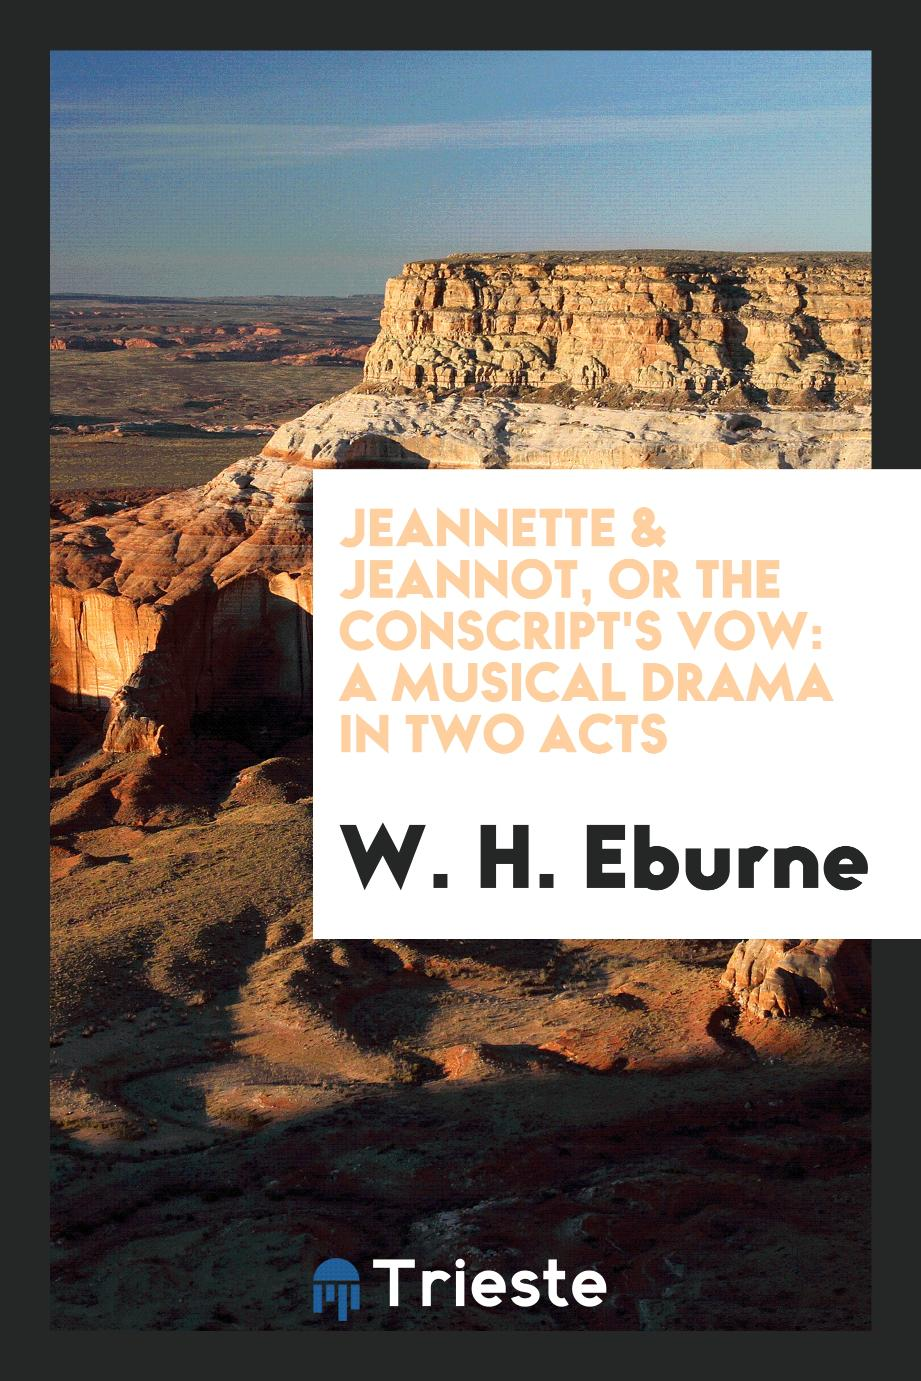 Jeannette & Jeannot, Or The Conscript's Vow: A Musical Drama in Two Acts